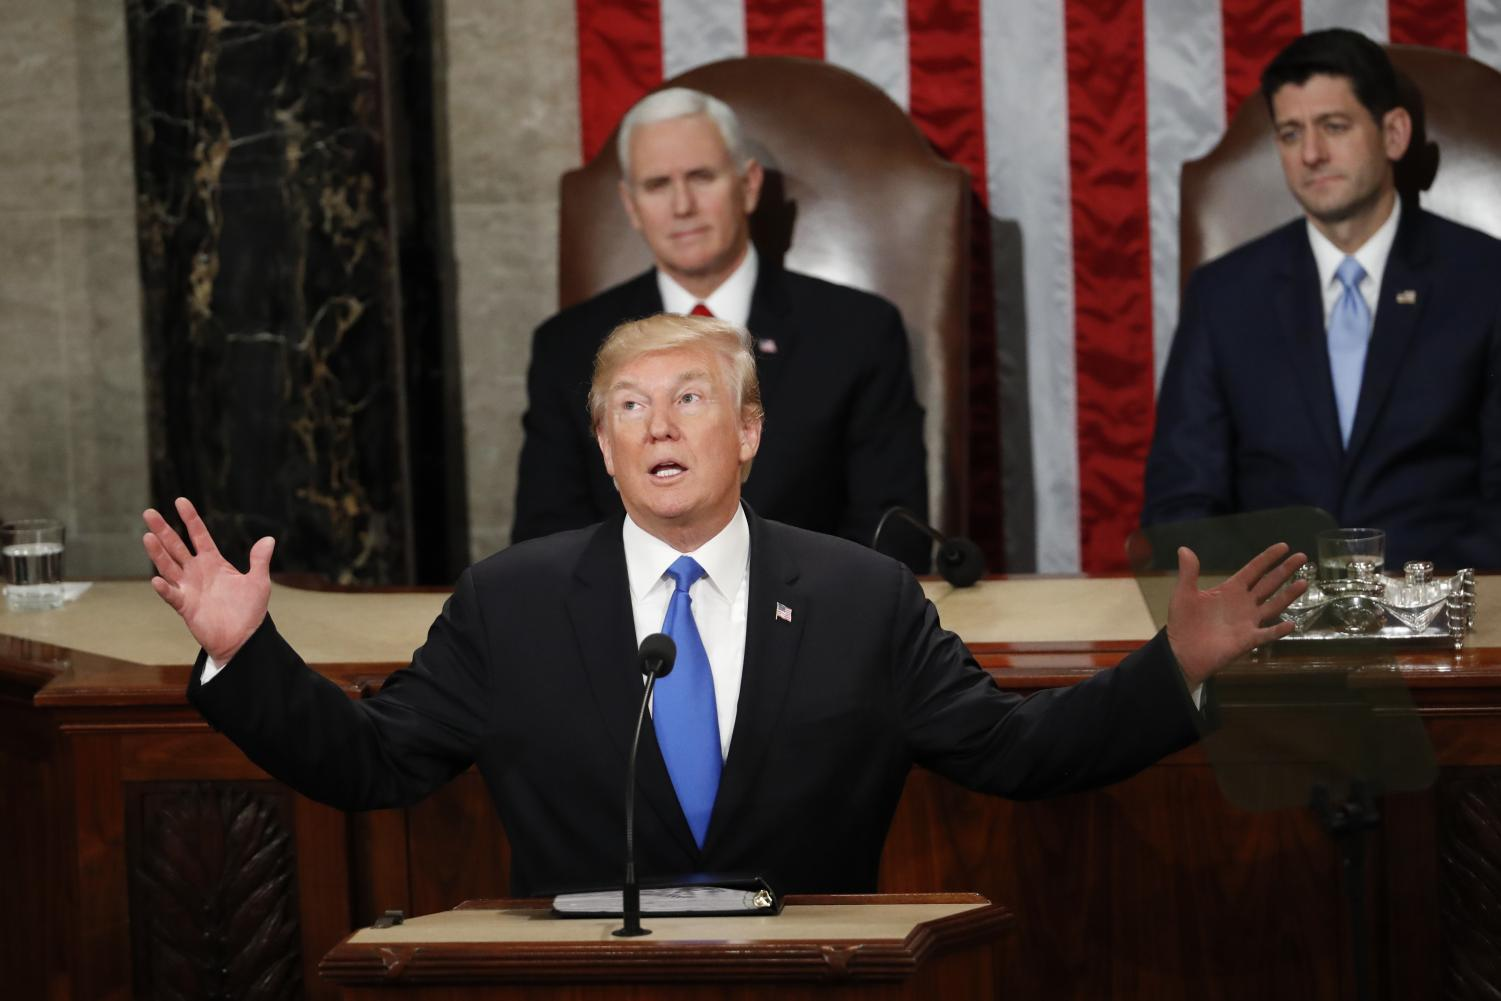 """President Trump stuck to his script and promoted his """"America First"""" policies. (Photo courtesy of the Associated Press)"""